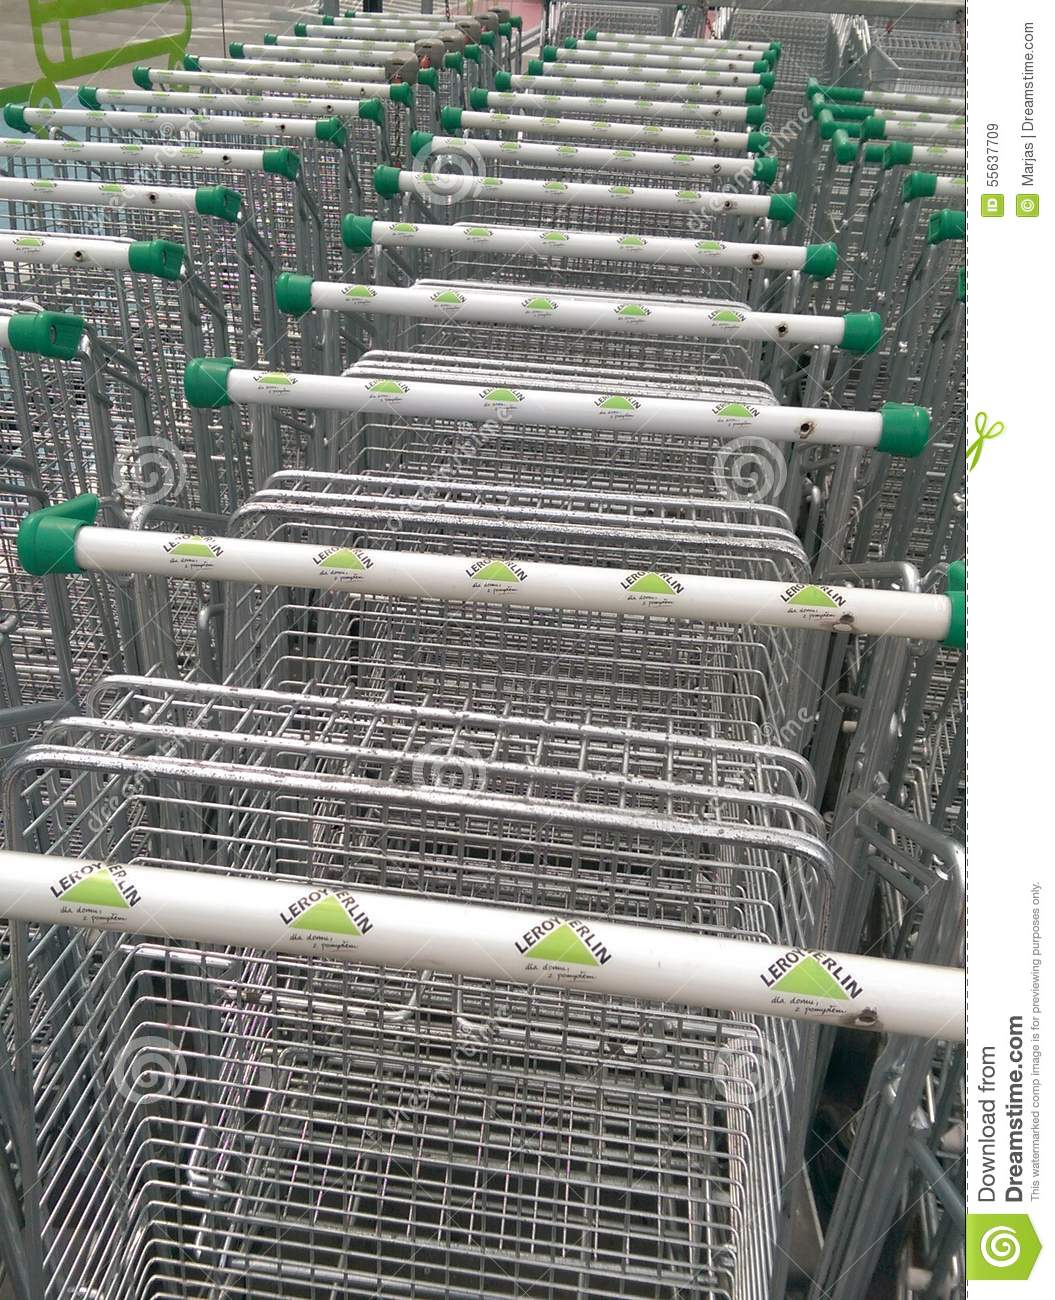 Leroy Merlin Trolley Editorial Stock Image Image Of Line